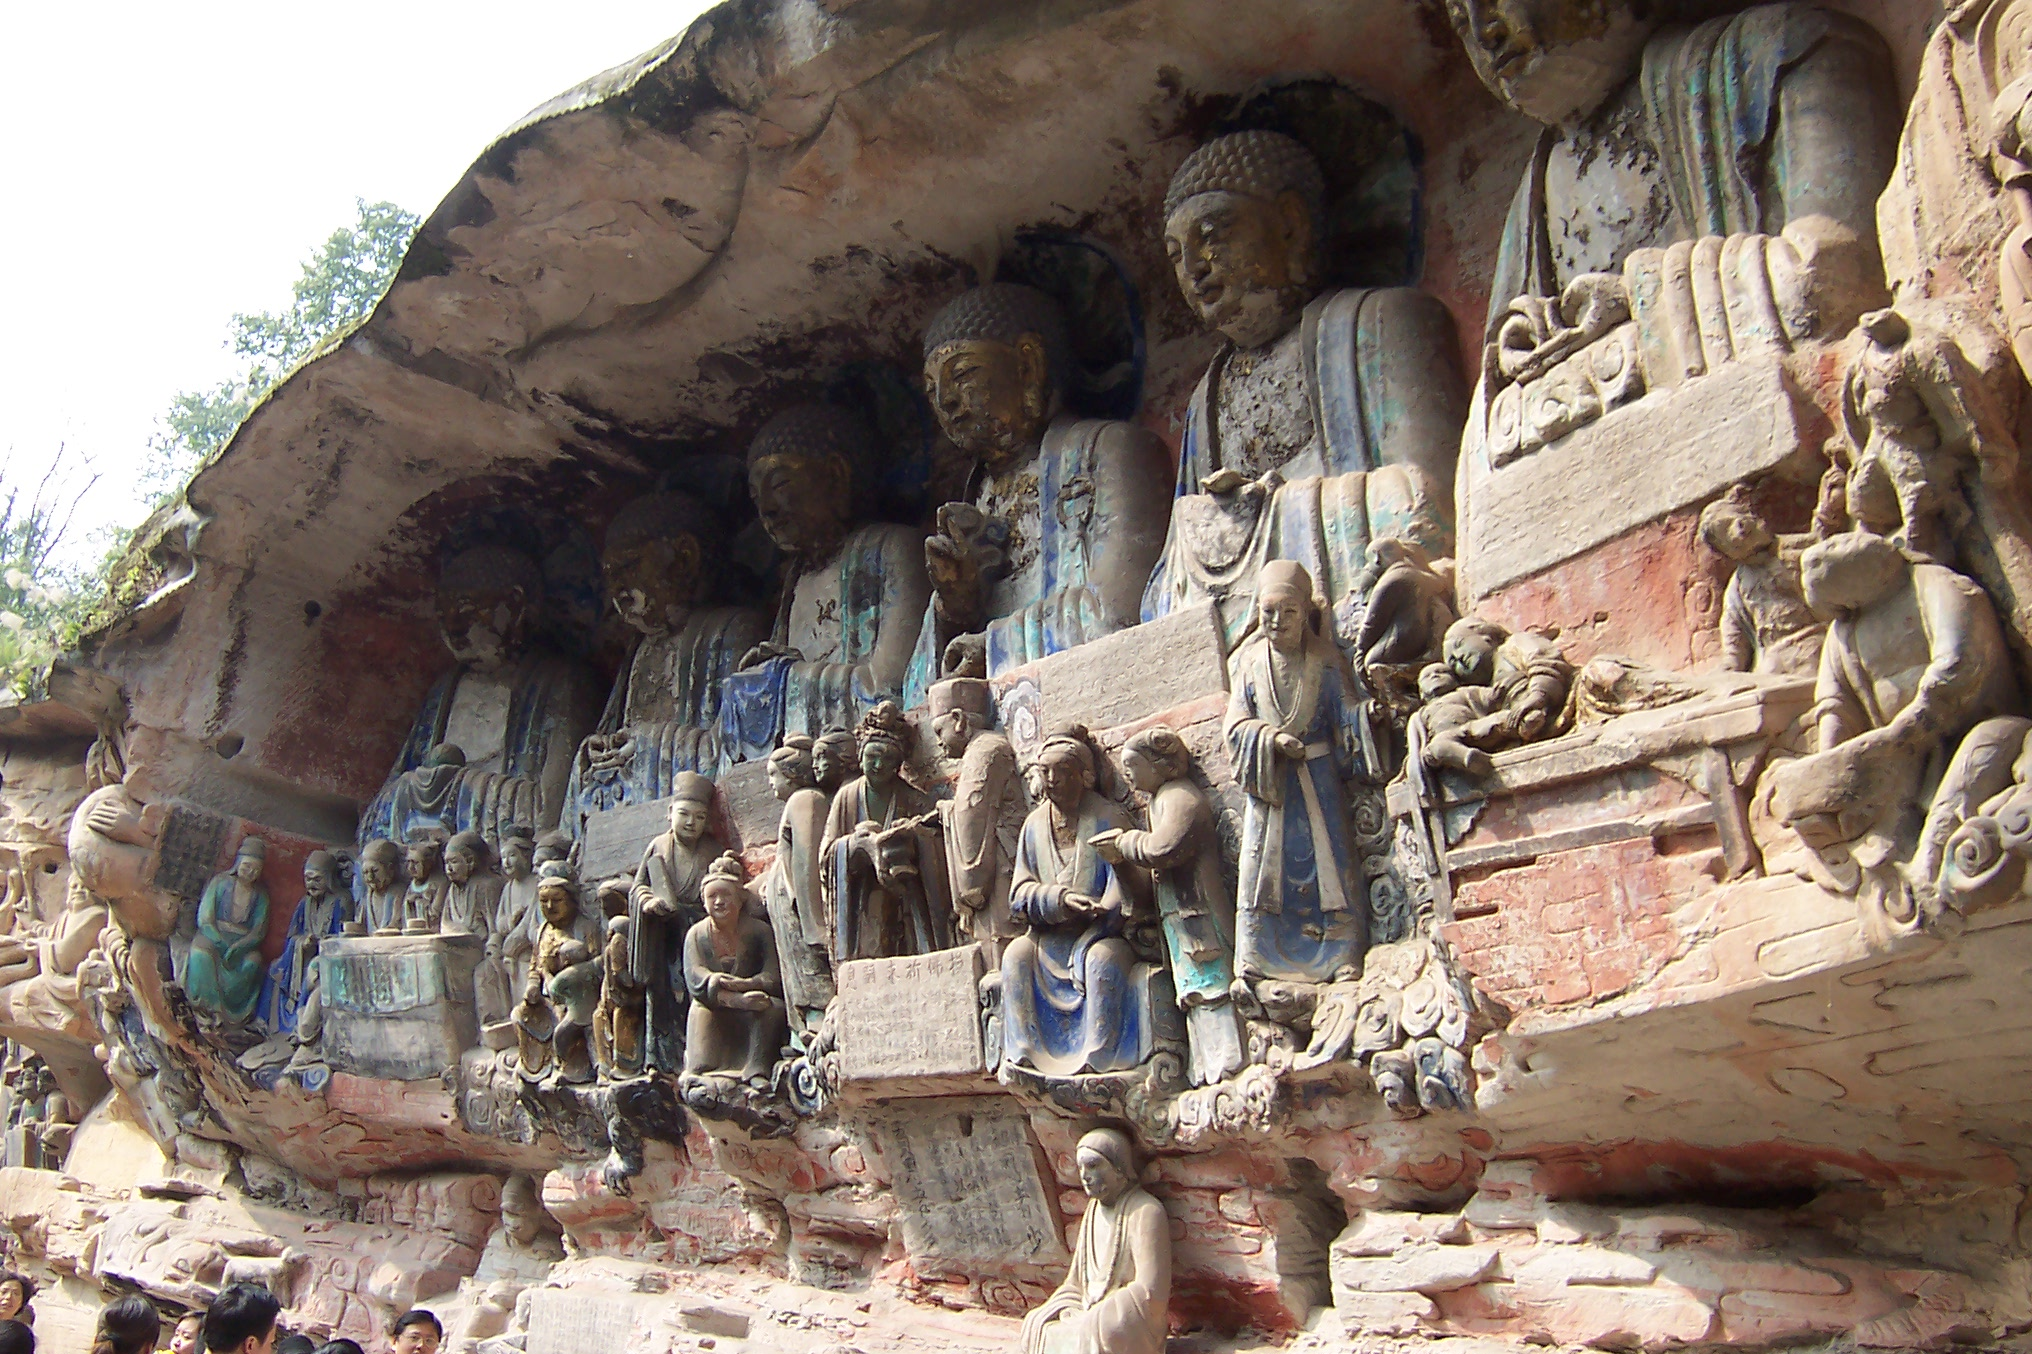 Plik dazu rock carvings baoding buddhas g wikipedia